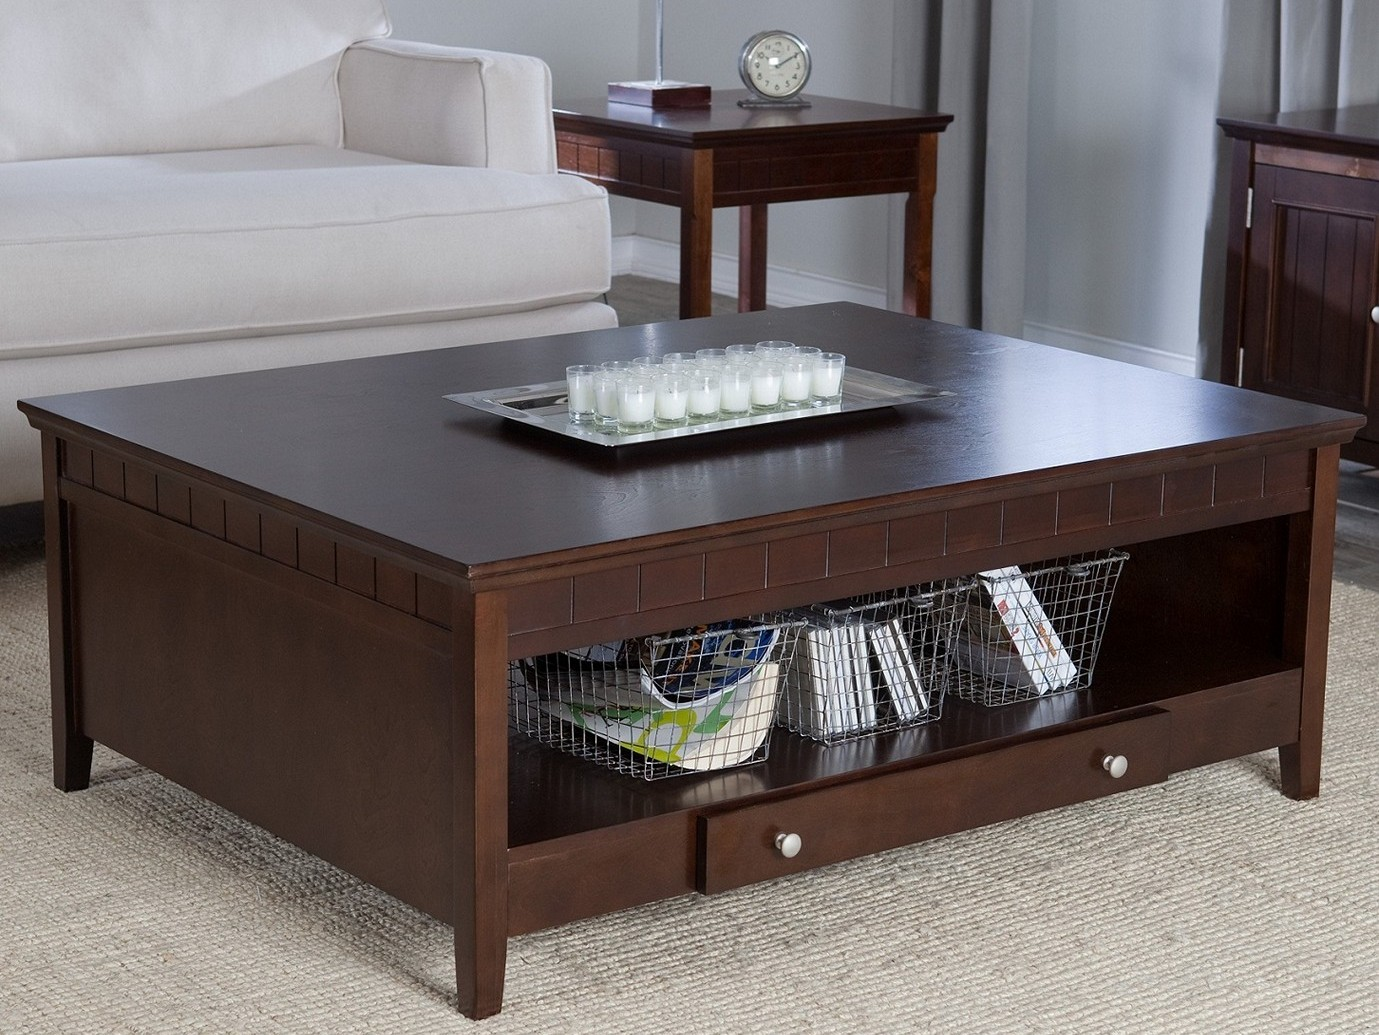 Espresso Coffee Table with Open Shelf